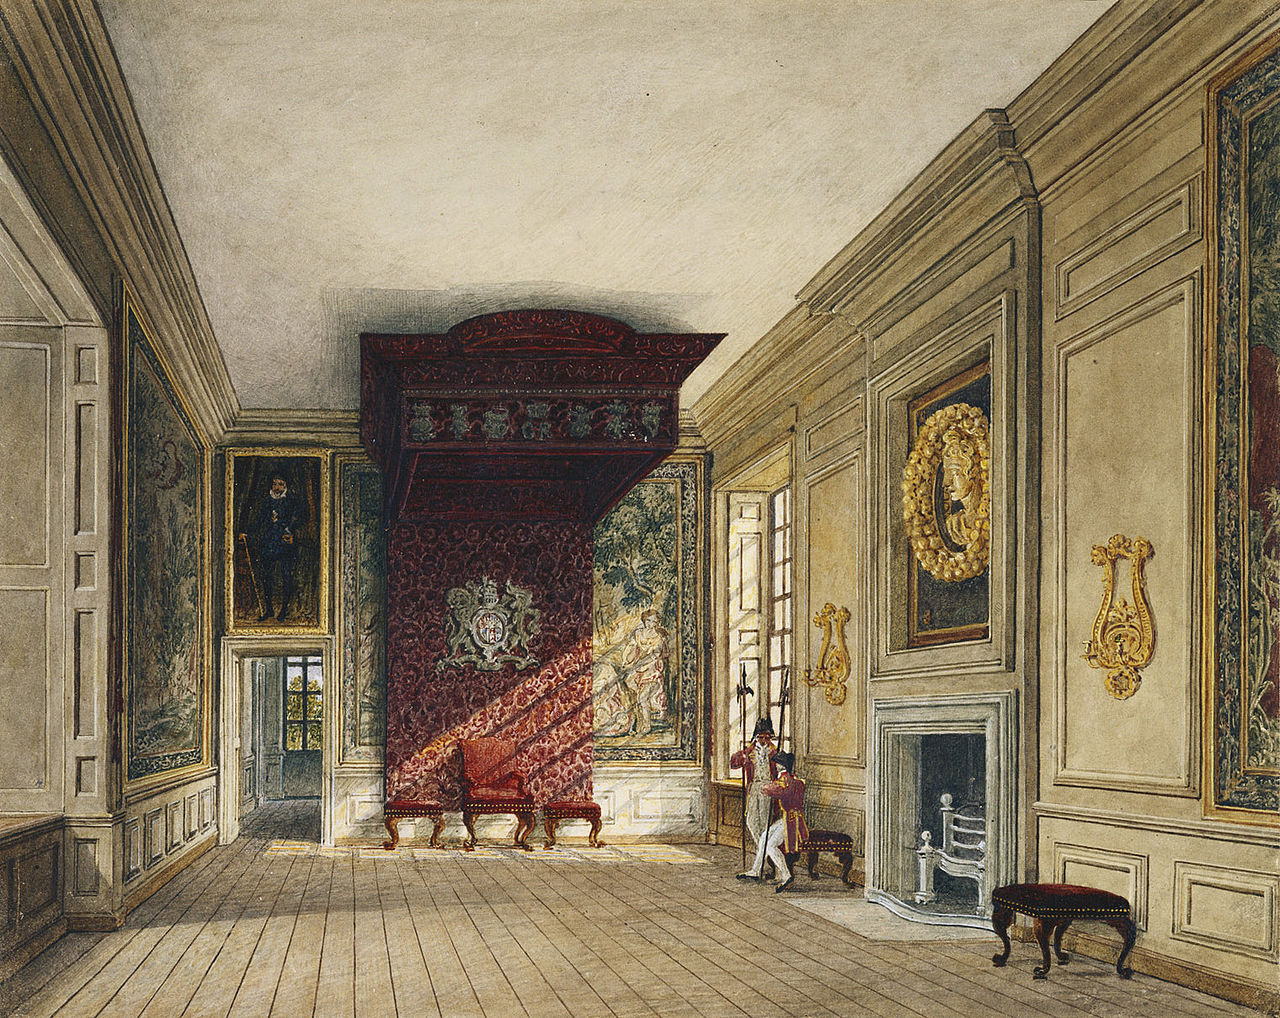 Birth Control >> File:St James's Palace, King's Presence Chamber, by Charles Wild, 1816 - royal coll 922163 ...